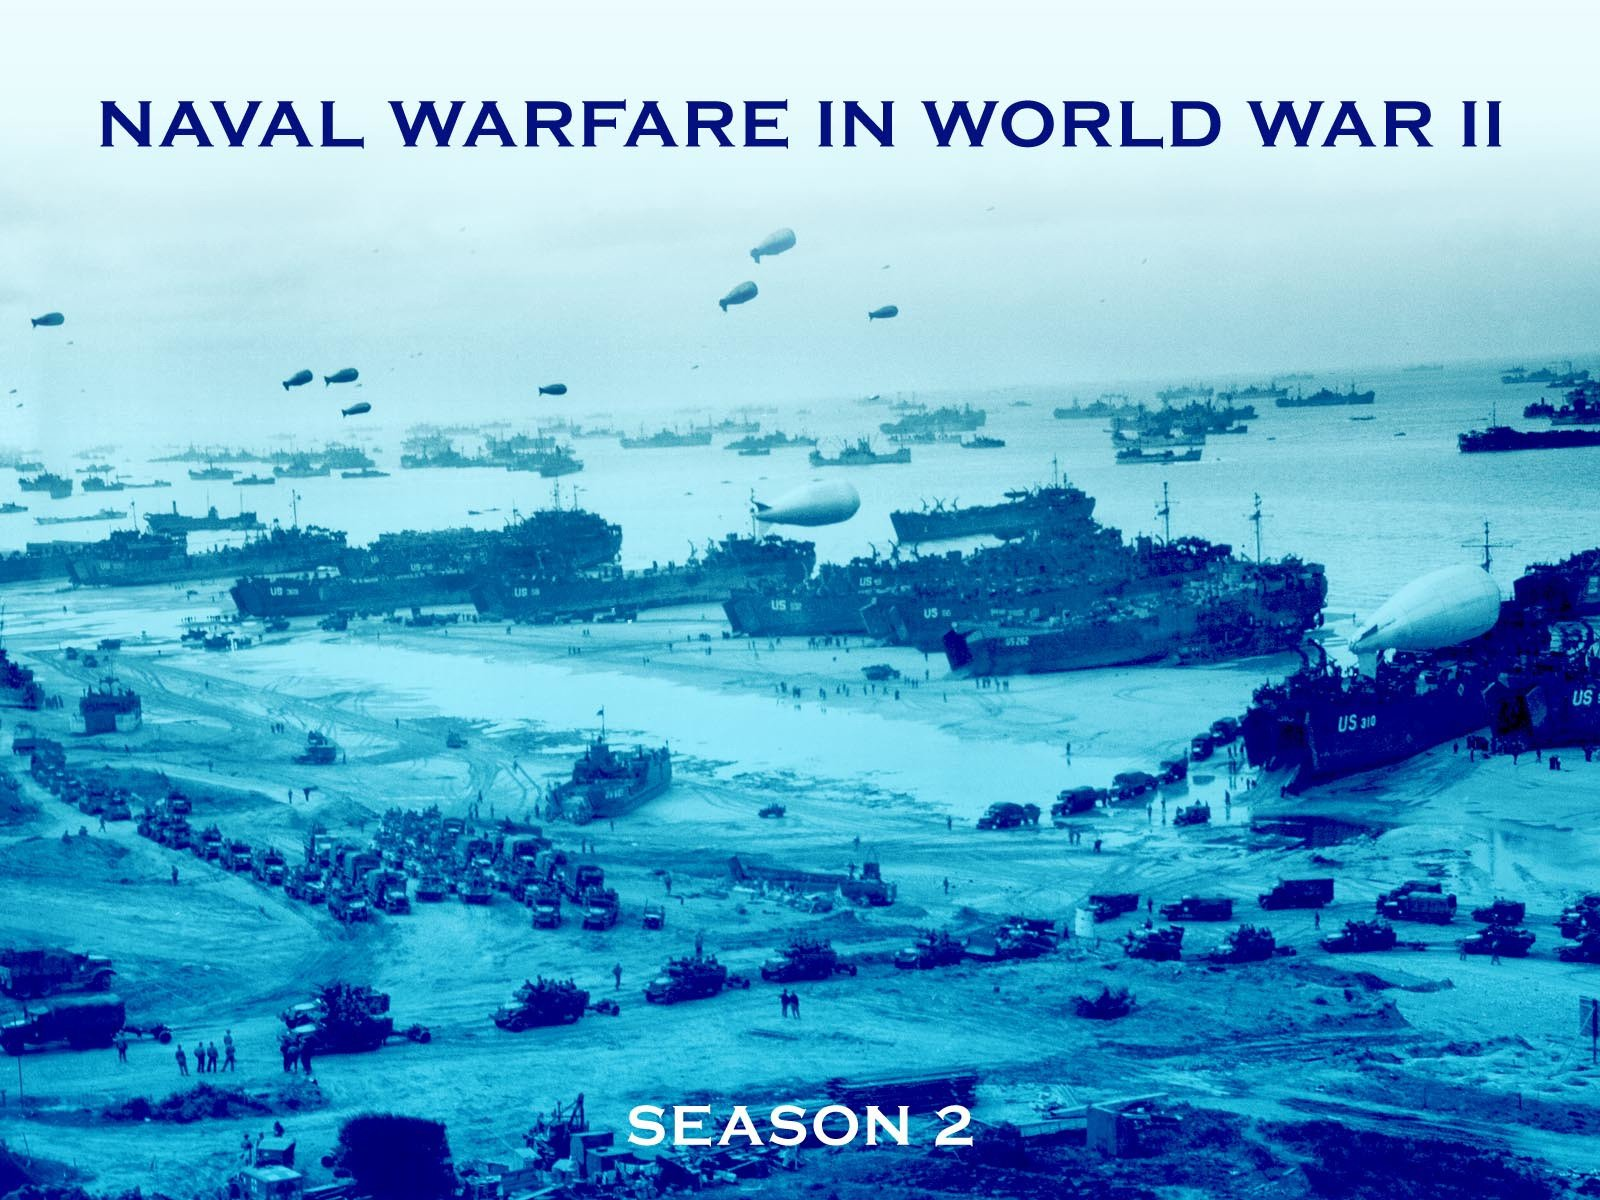 Naval Warfare in World War II - Season 2